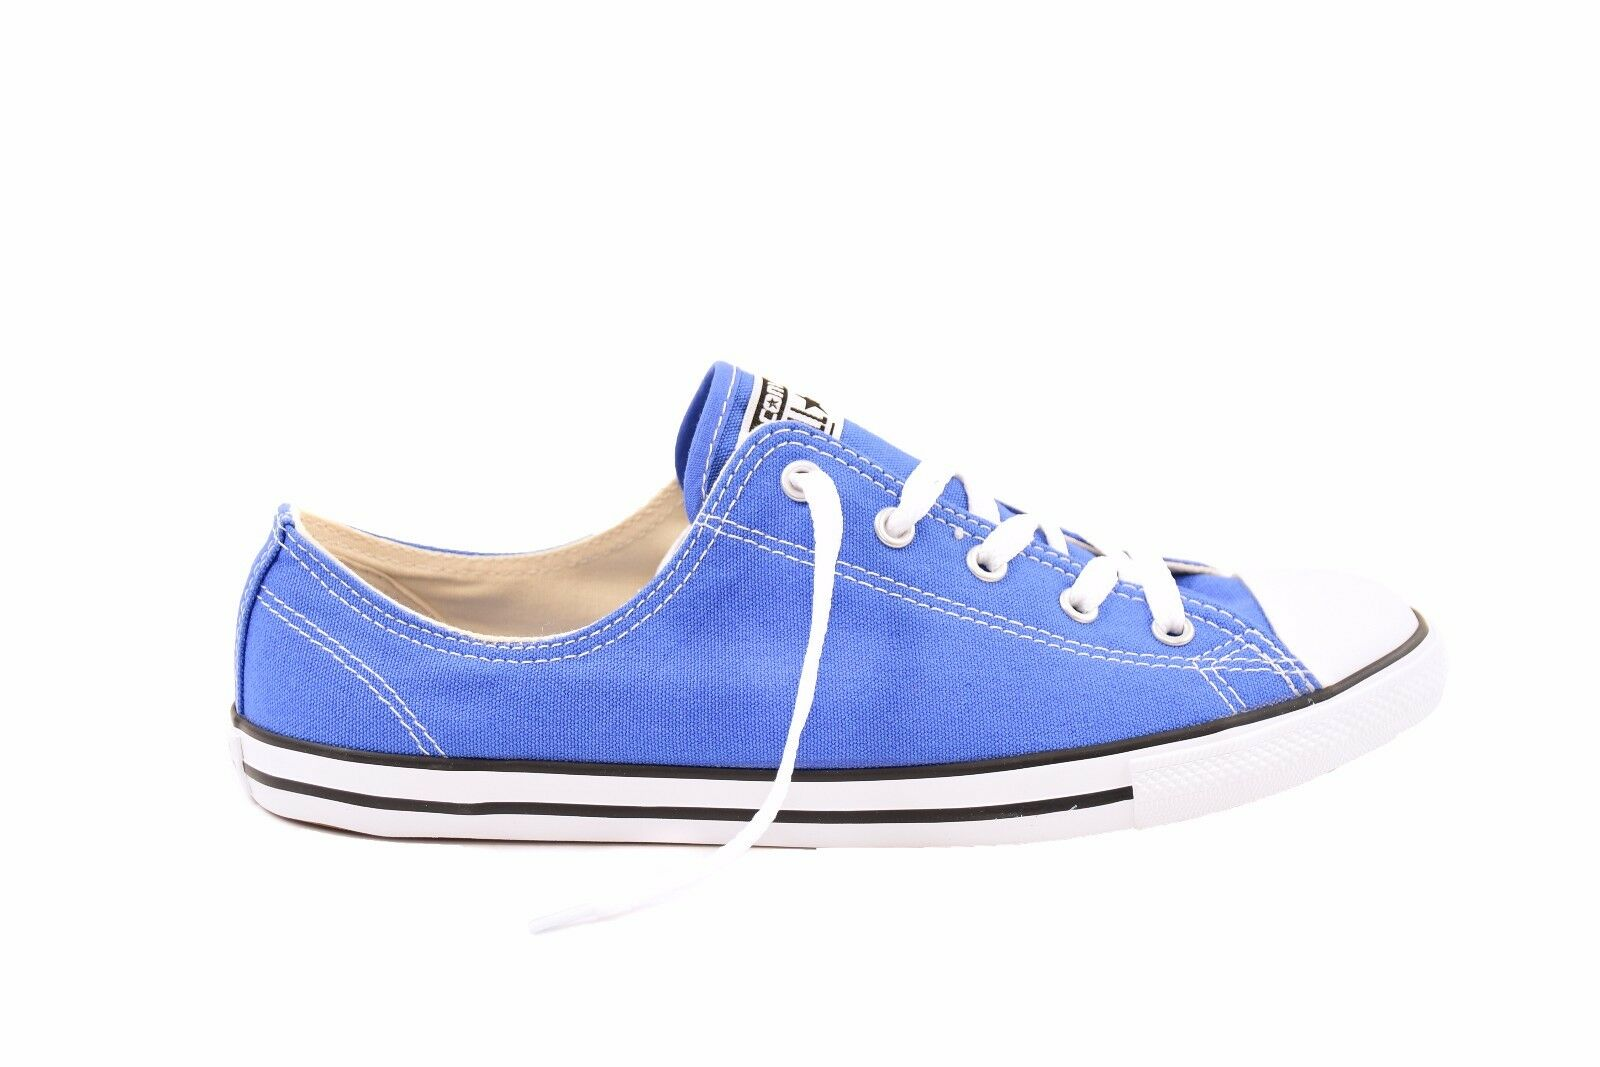 Converse Women CTAS Dainty Canvas Color OX 553373C Sneakers Blue RRP £88 BCF79